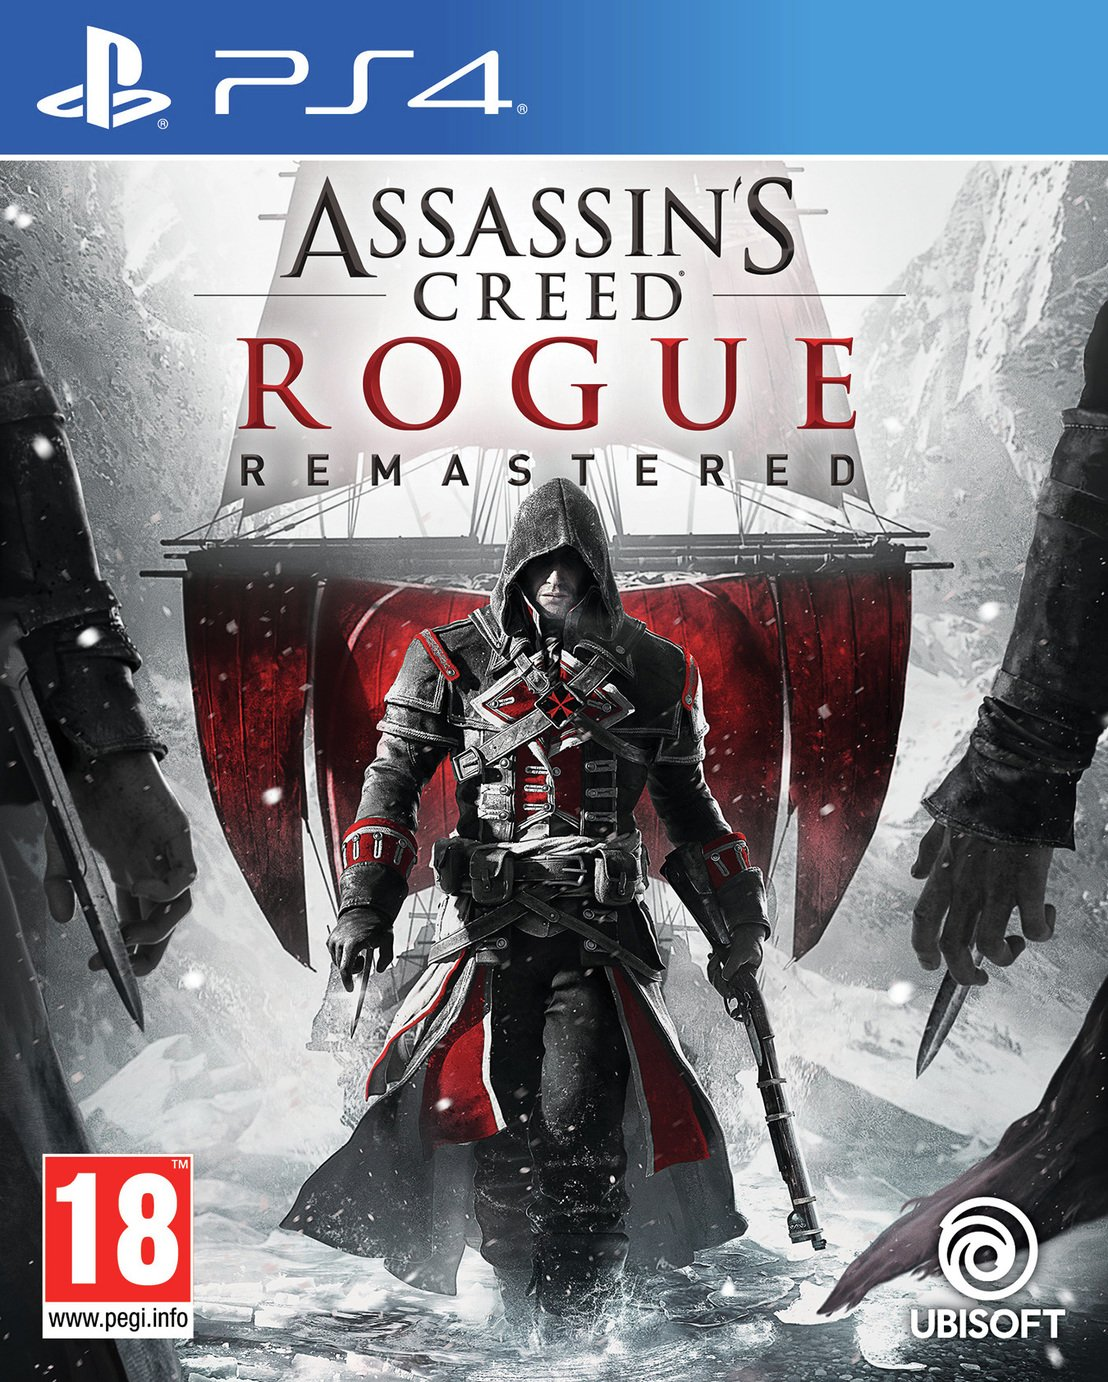 Assassins Creed Rogue HD PS4 Game from Ps4 pro enhanced